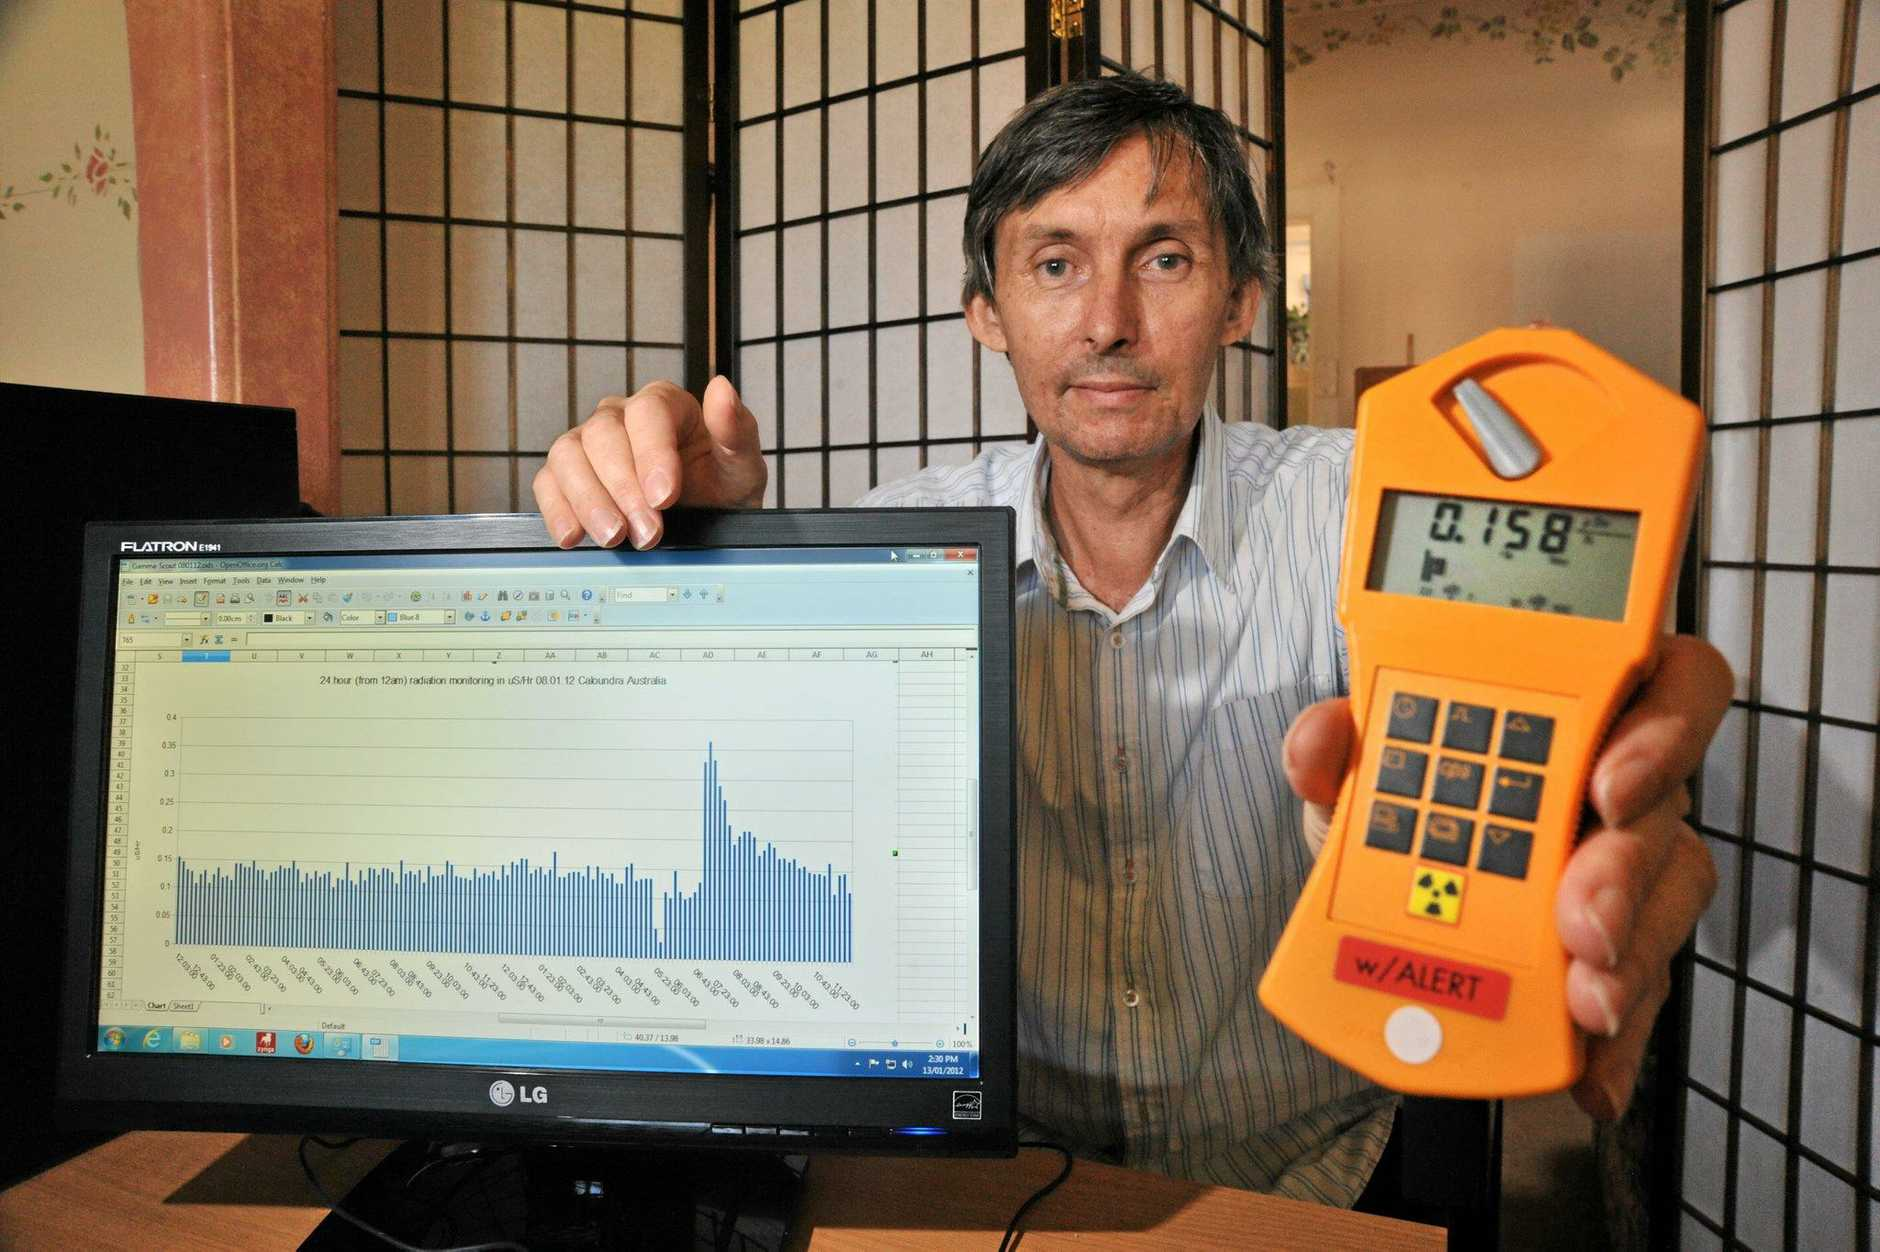 Peter Daley and his Geiger counter